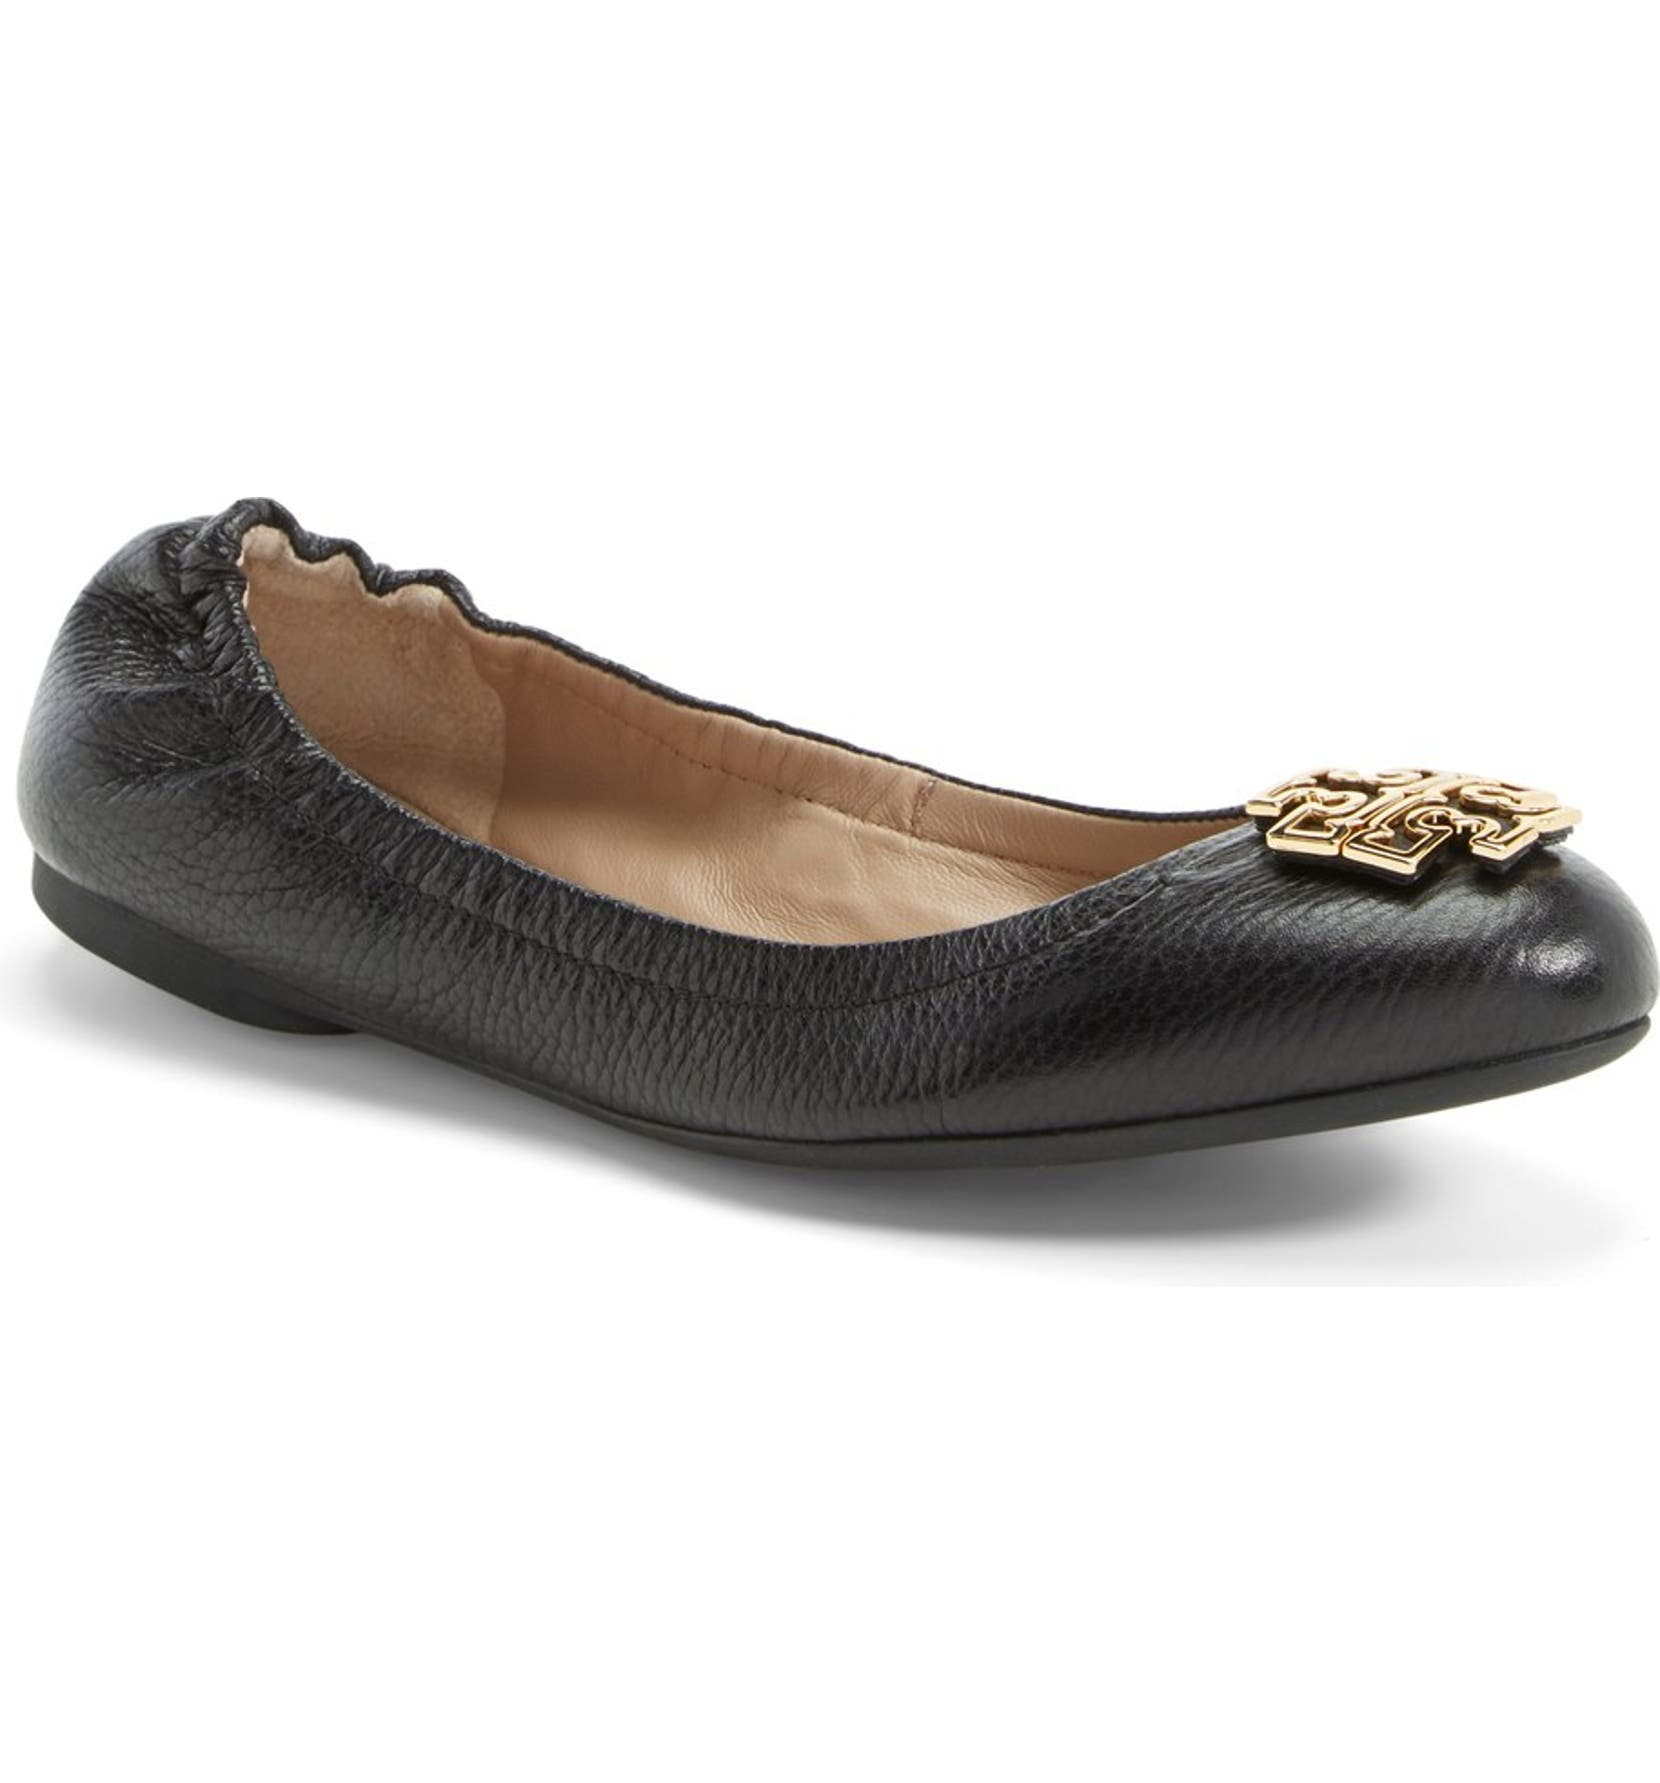 26a3932bf4ab Tory Burch  Melinda  Ballet Flat (Women) (Nordstrom Exclusive ...